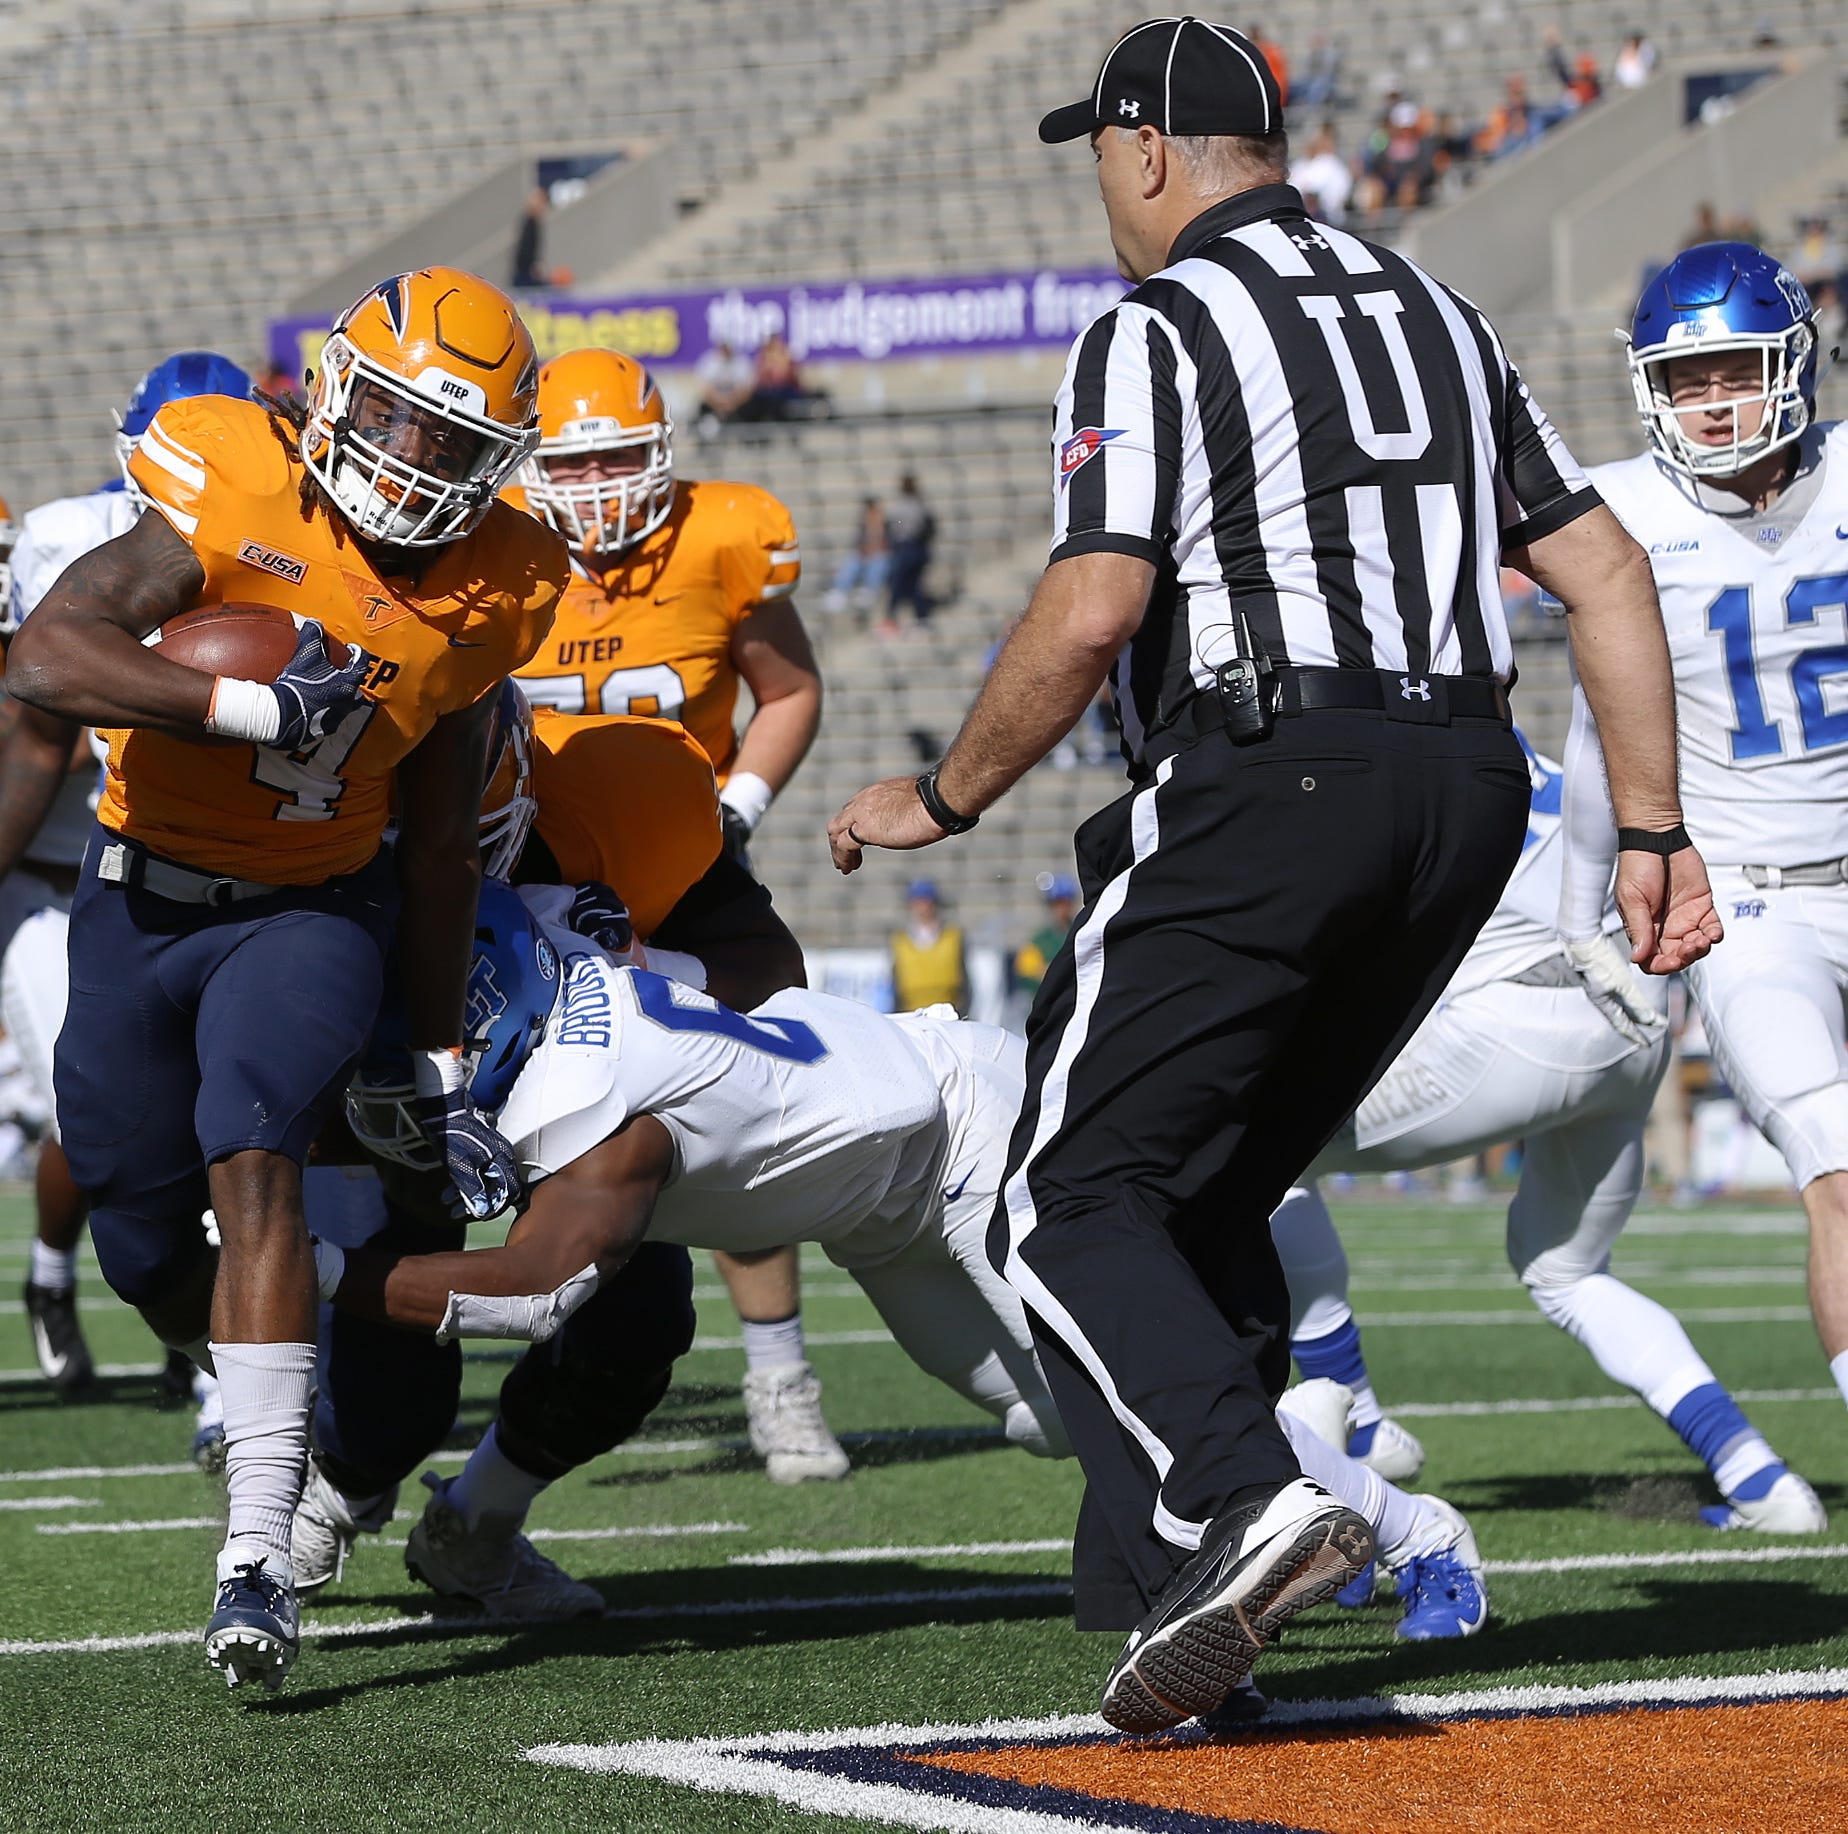 UTEP football plays for pride, but could be spoiler to Southern Miss bowl hopes